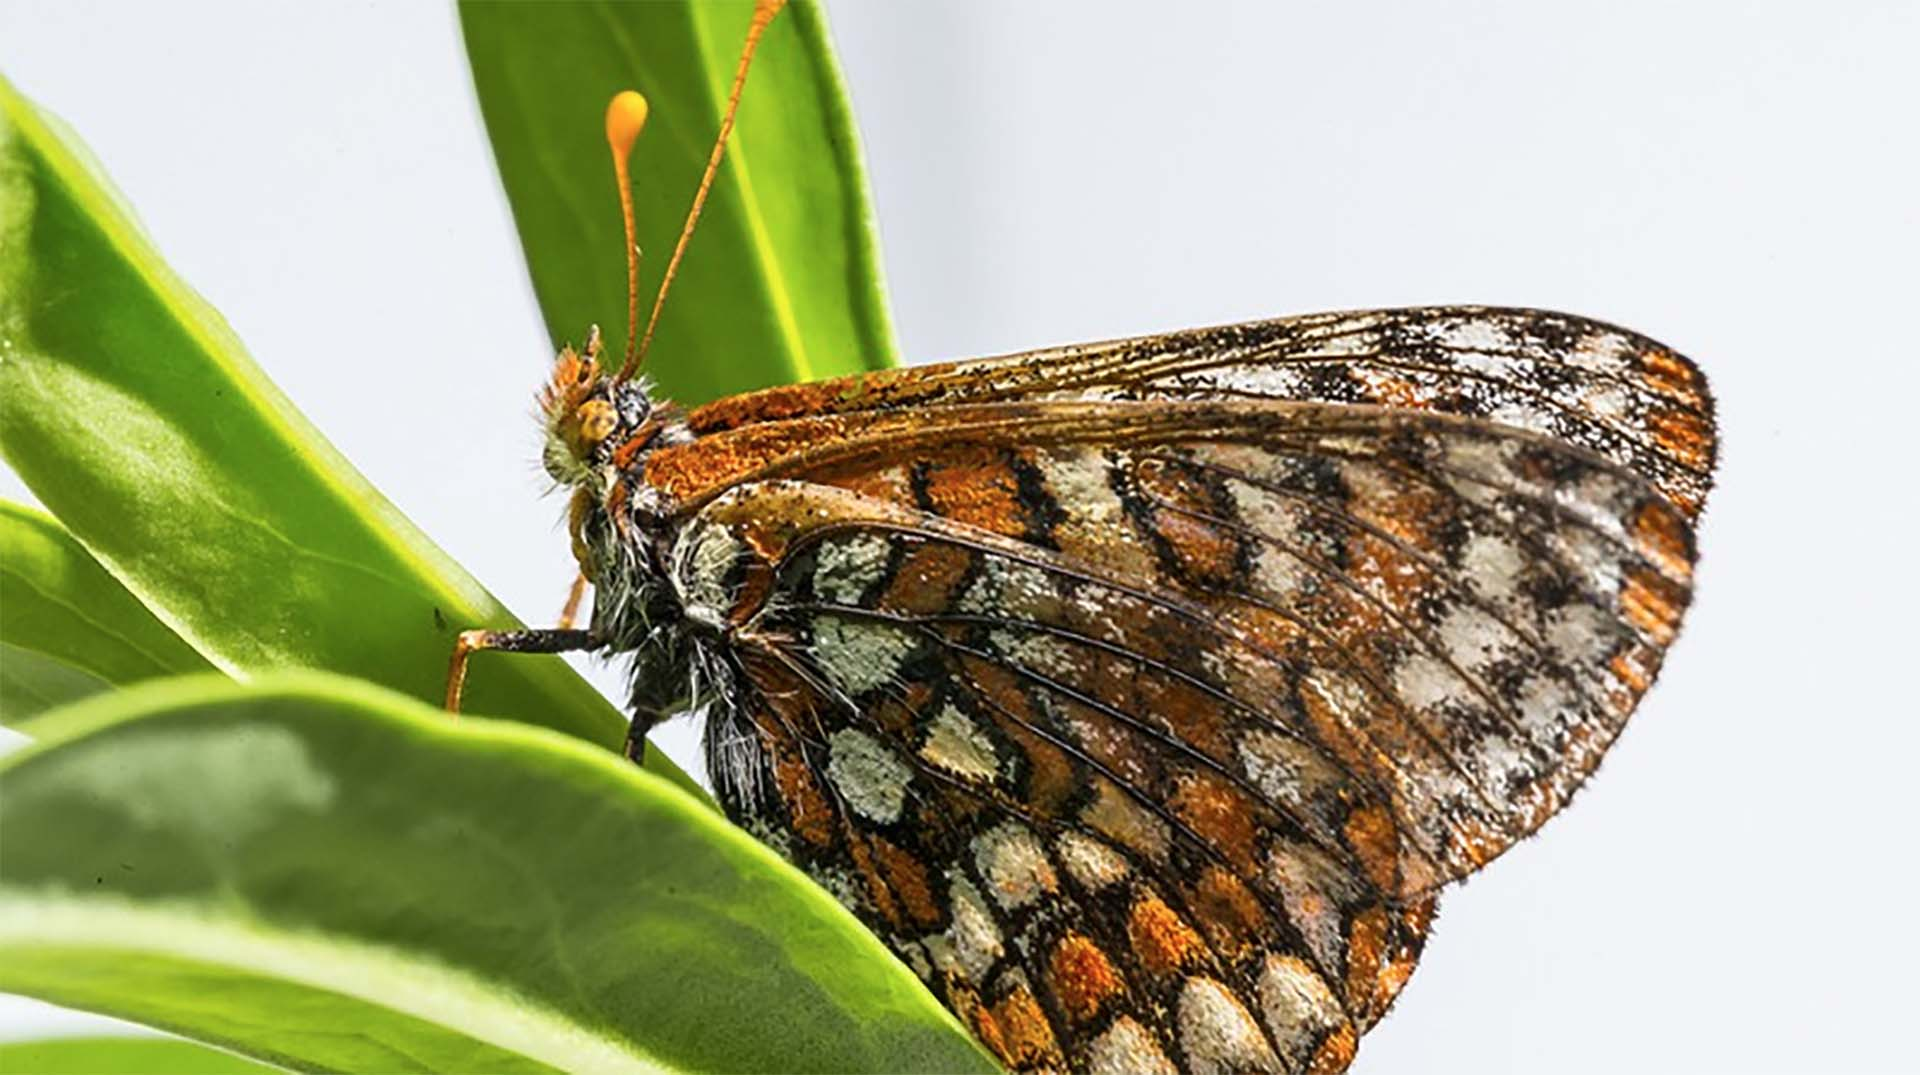 A Quino butterfly perched on a plant.